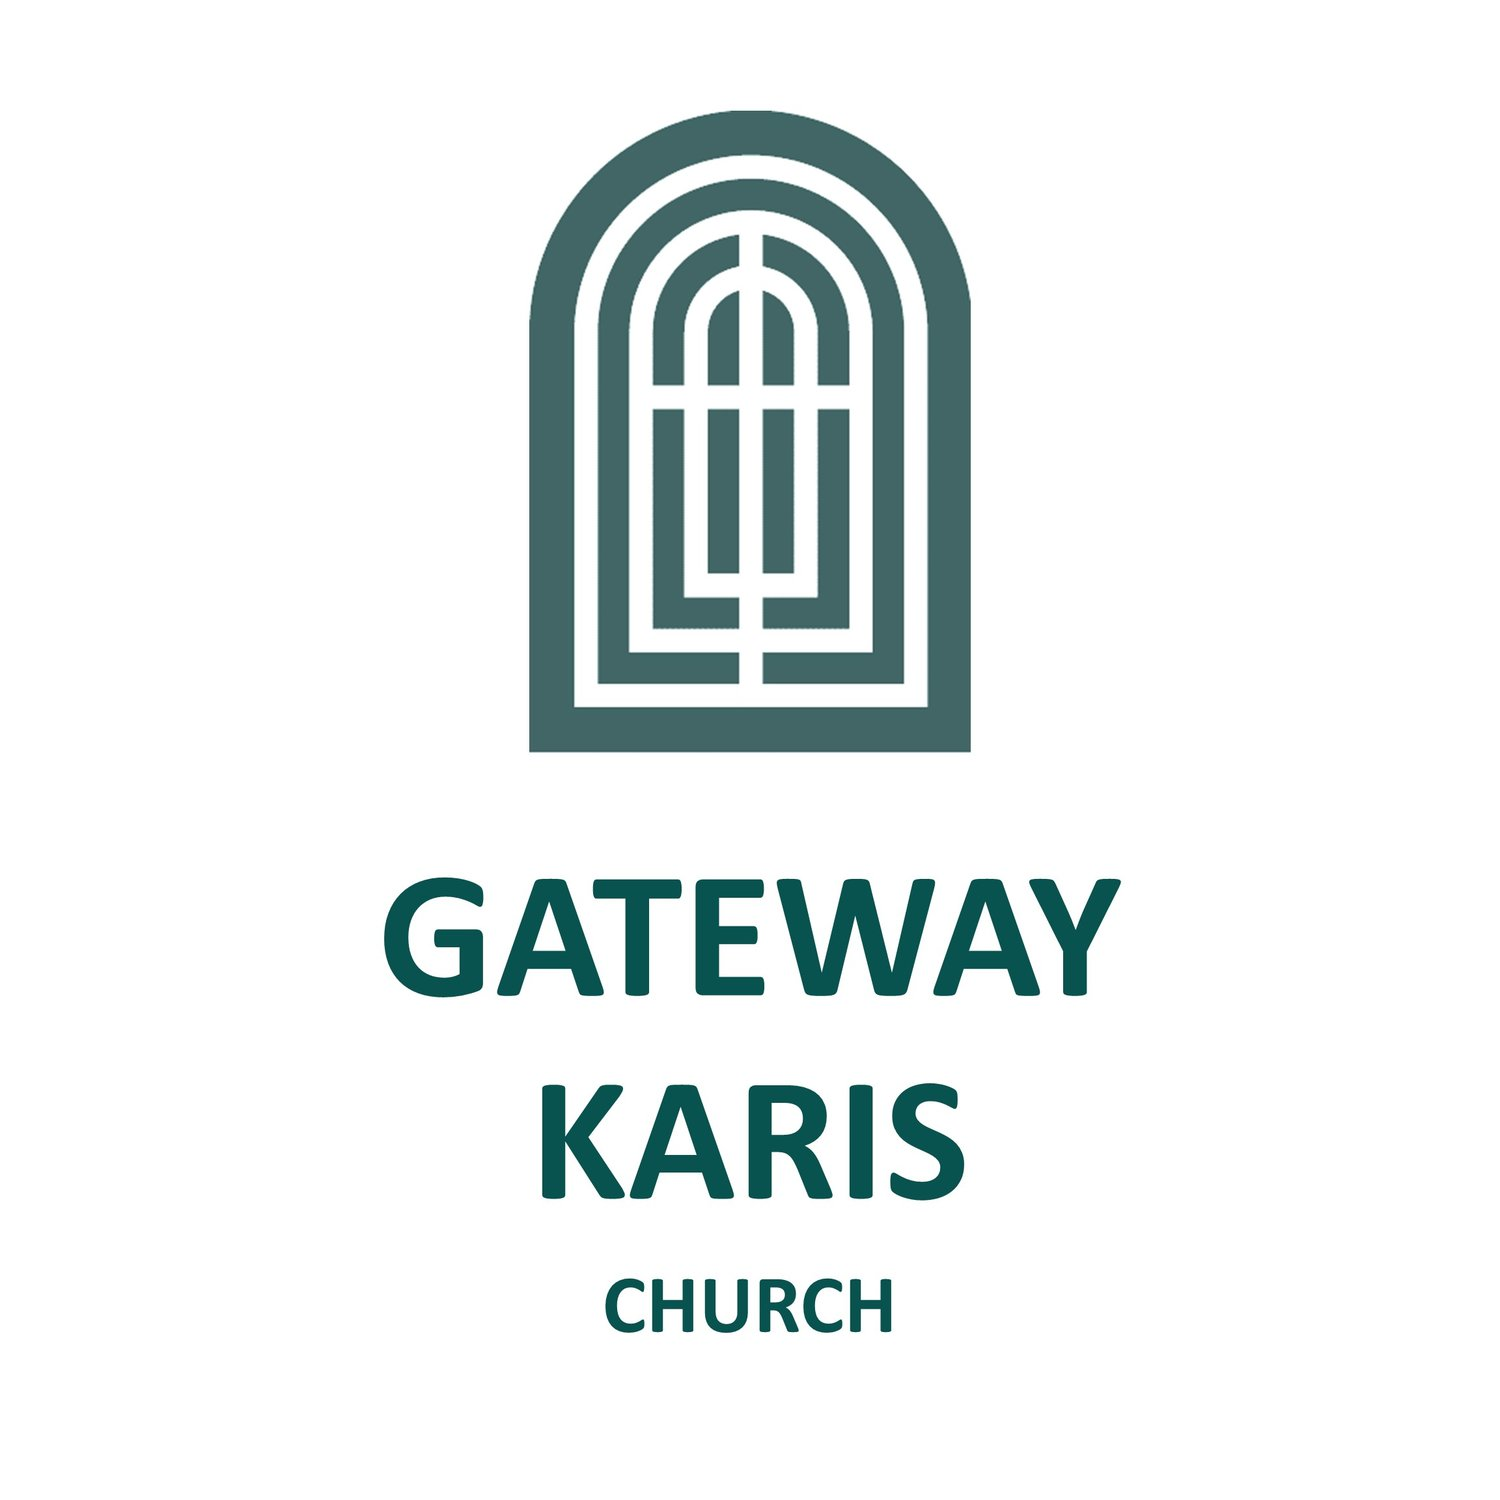 Gateway Karis Church